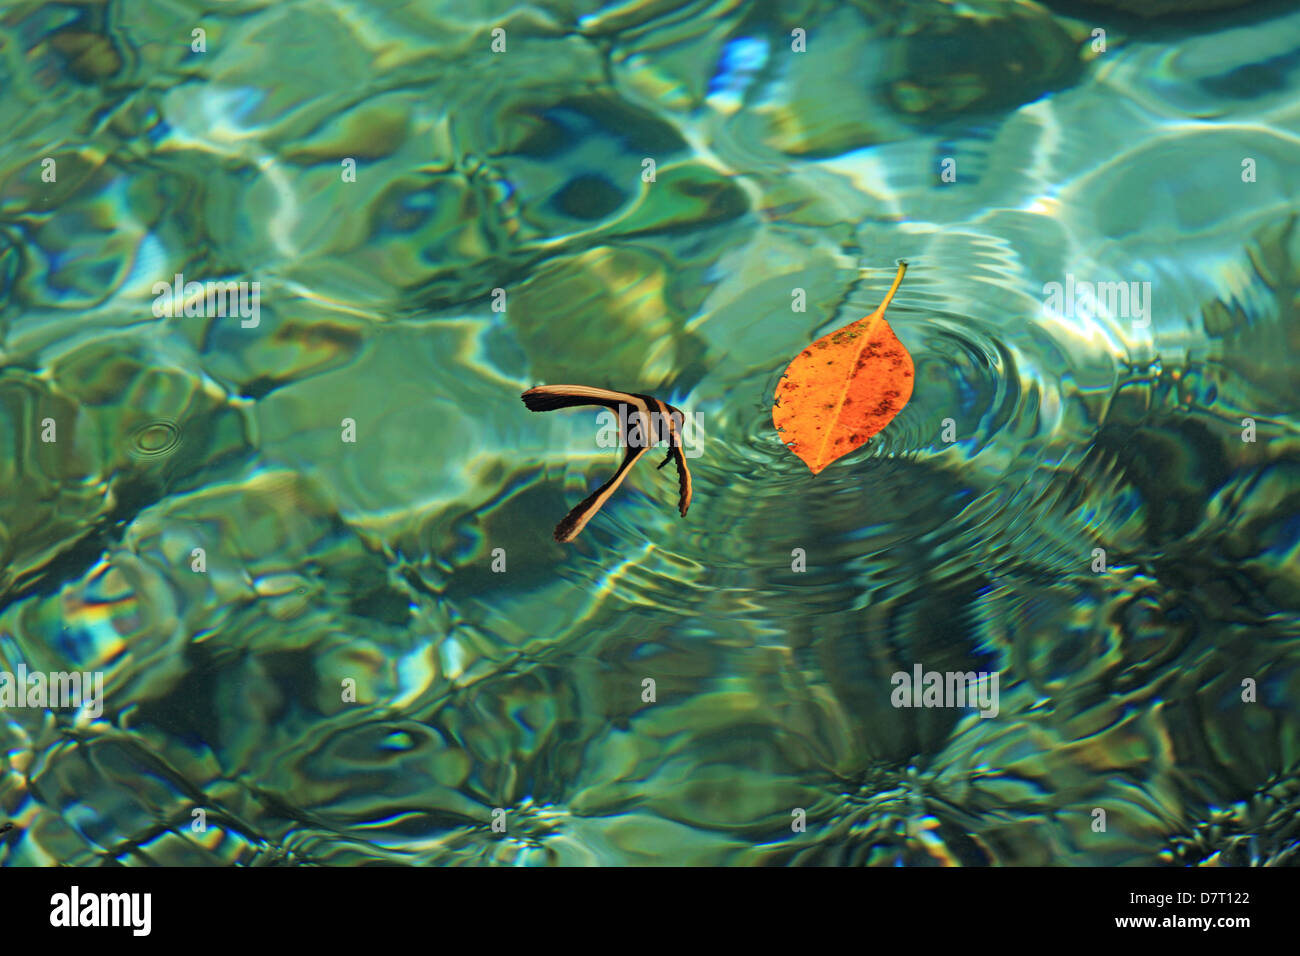 juvenile bat fish hunting by imitating a leaf on the water surface, Bangka Island, North Sulawesi, Indonesia - Stock Image